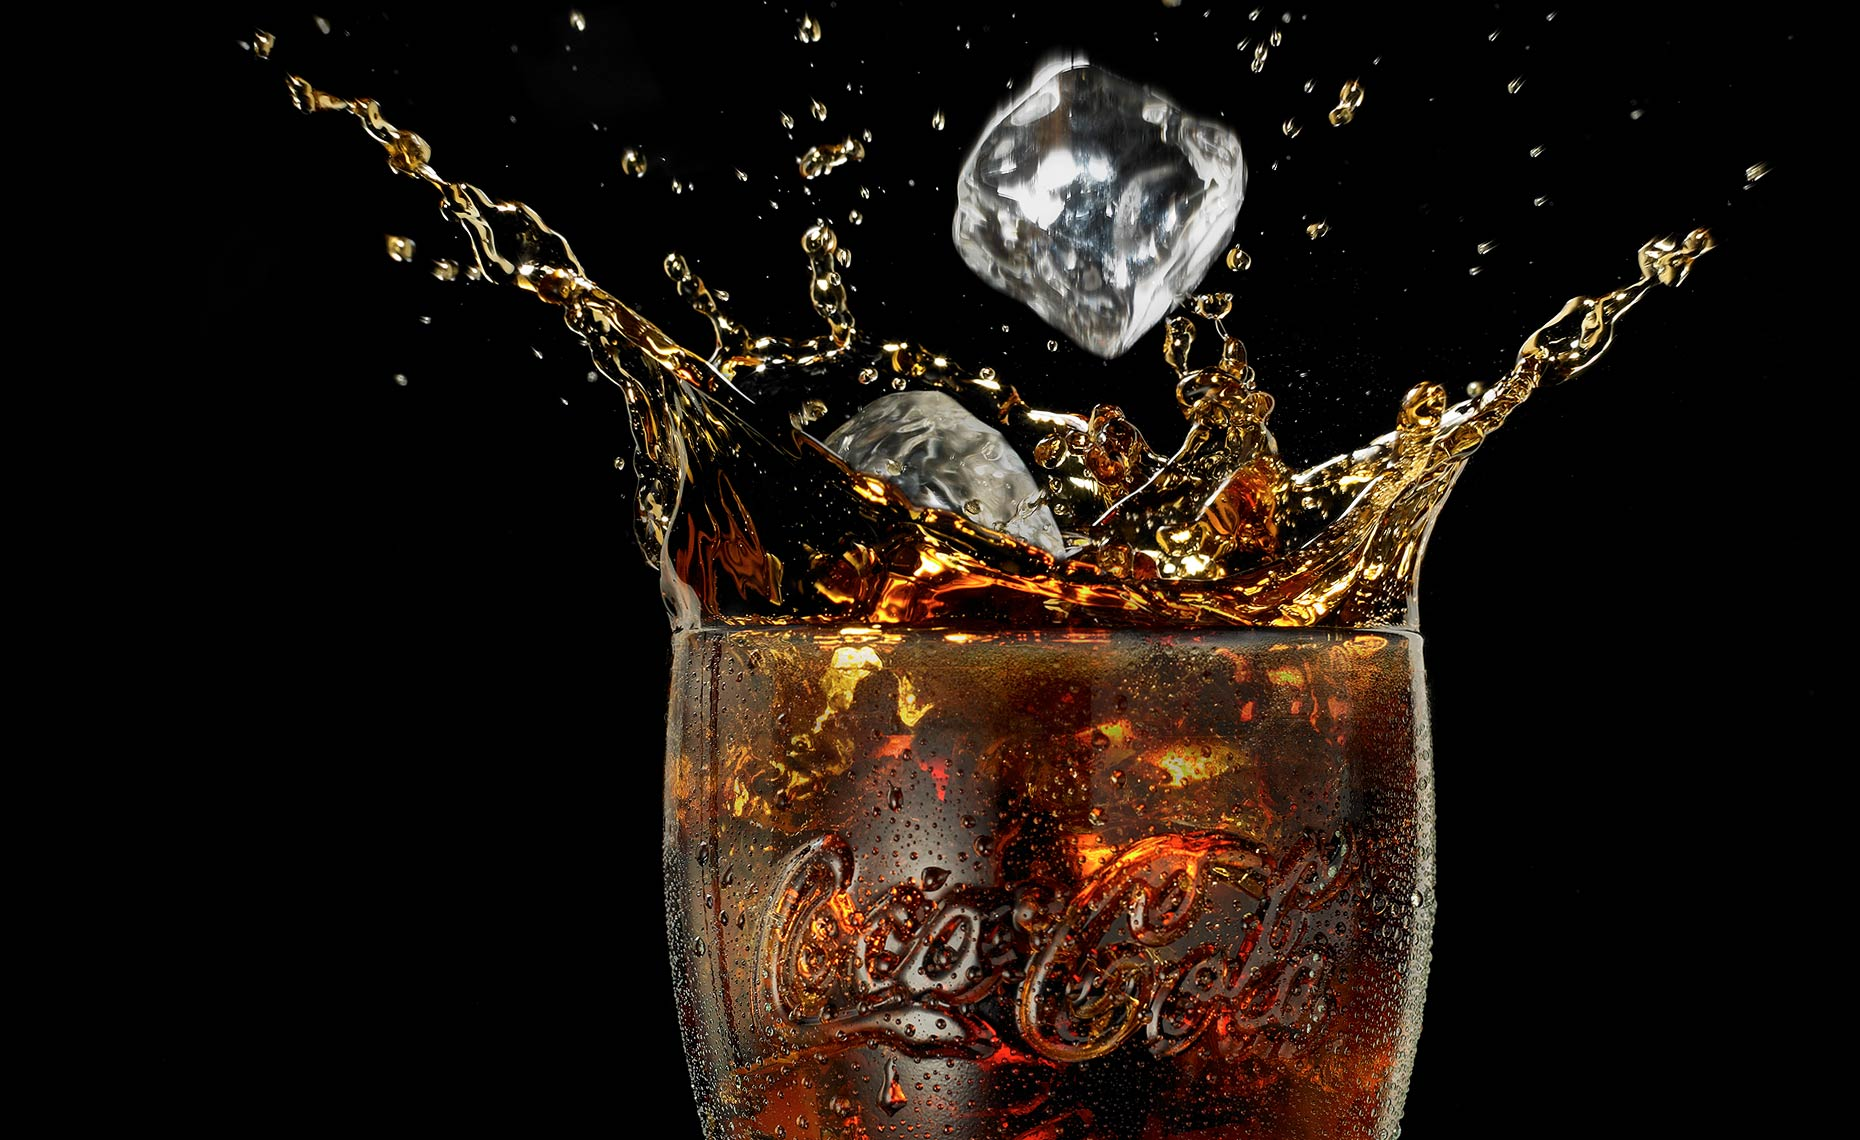 Coke_Splash_Full